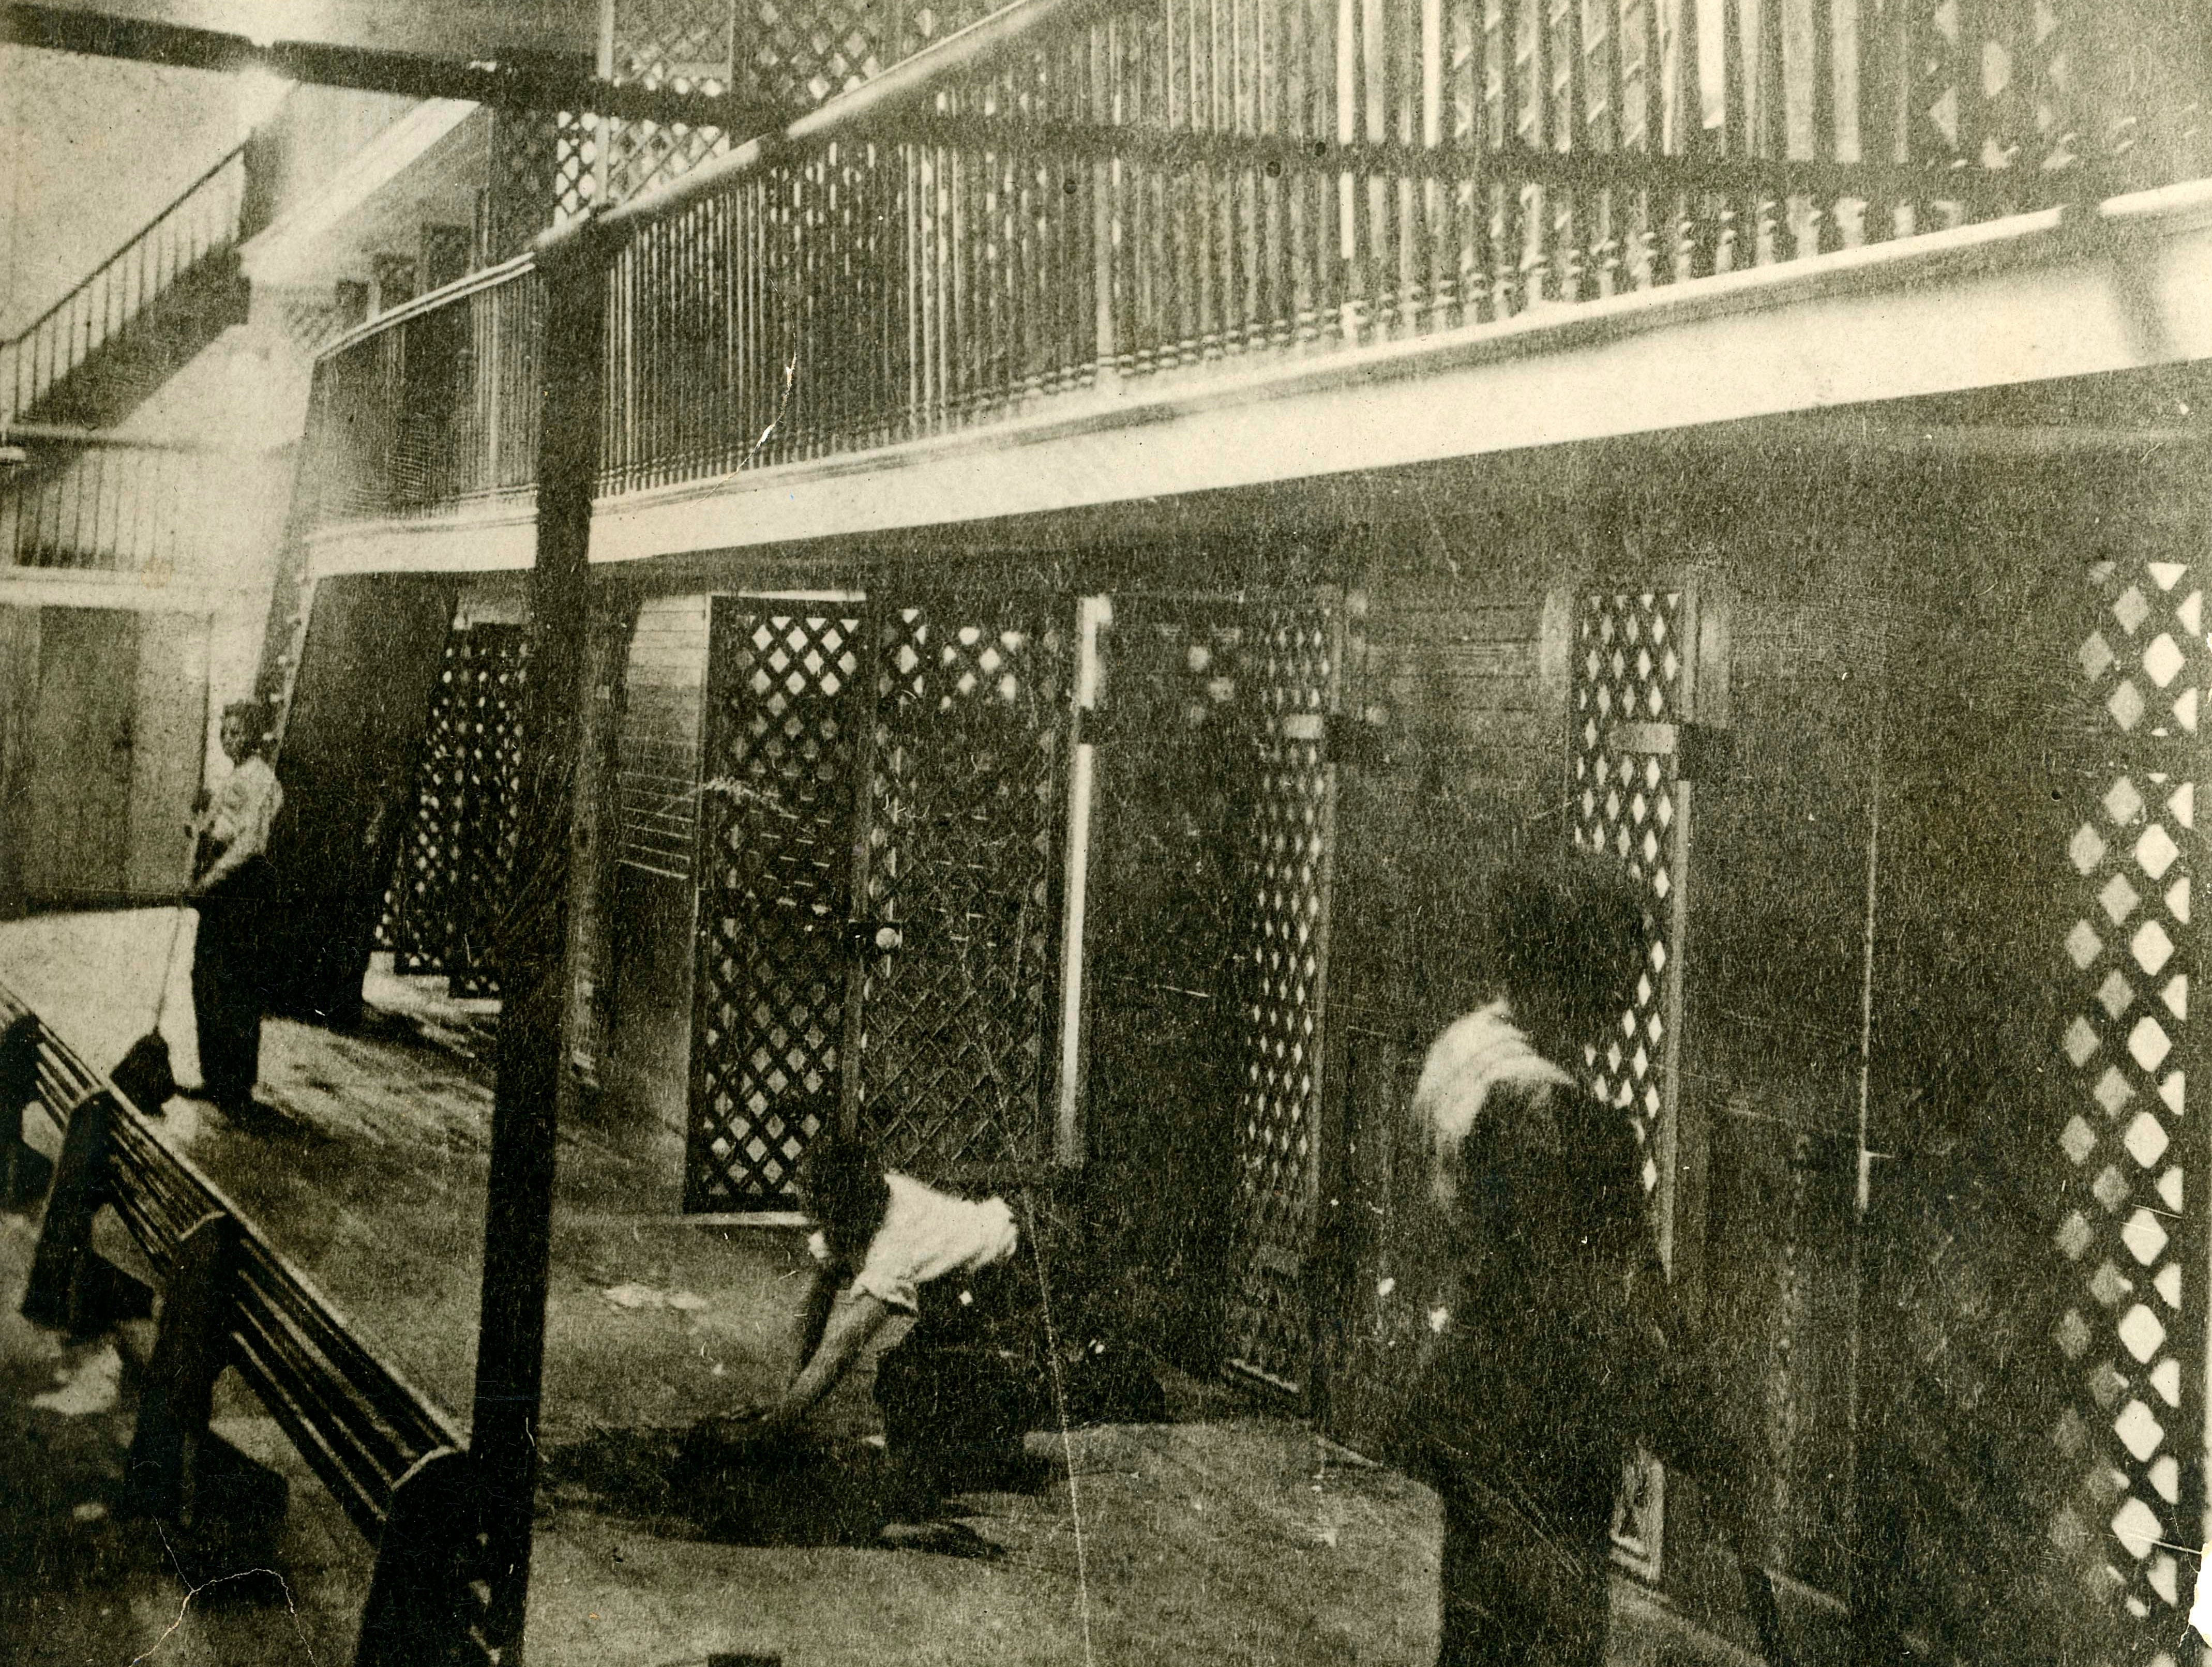 Juvenile offenders were housed in cell blocks in 1860, when this photo was taken at the reform school in Lansing.